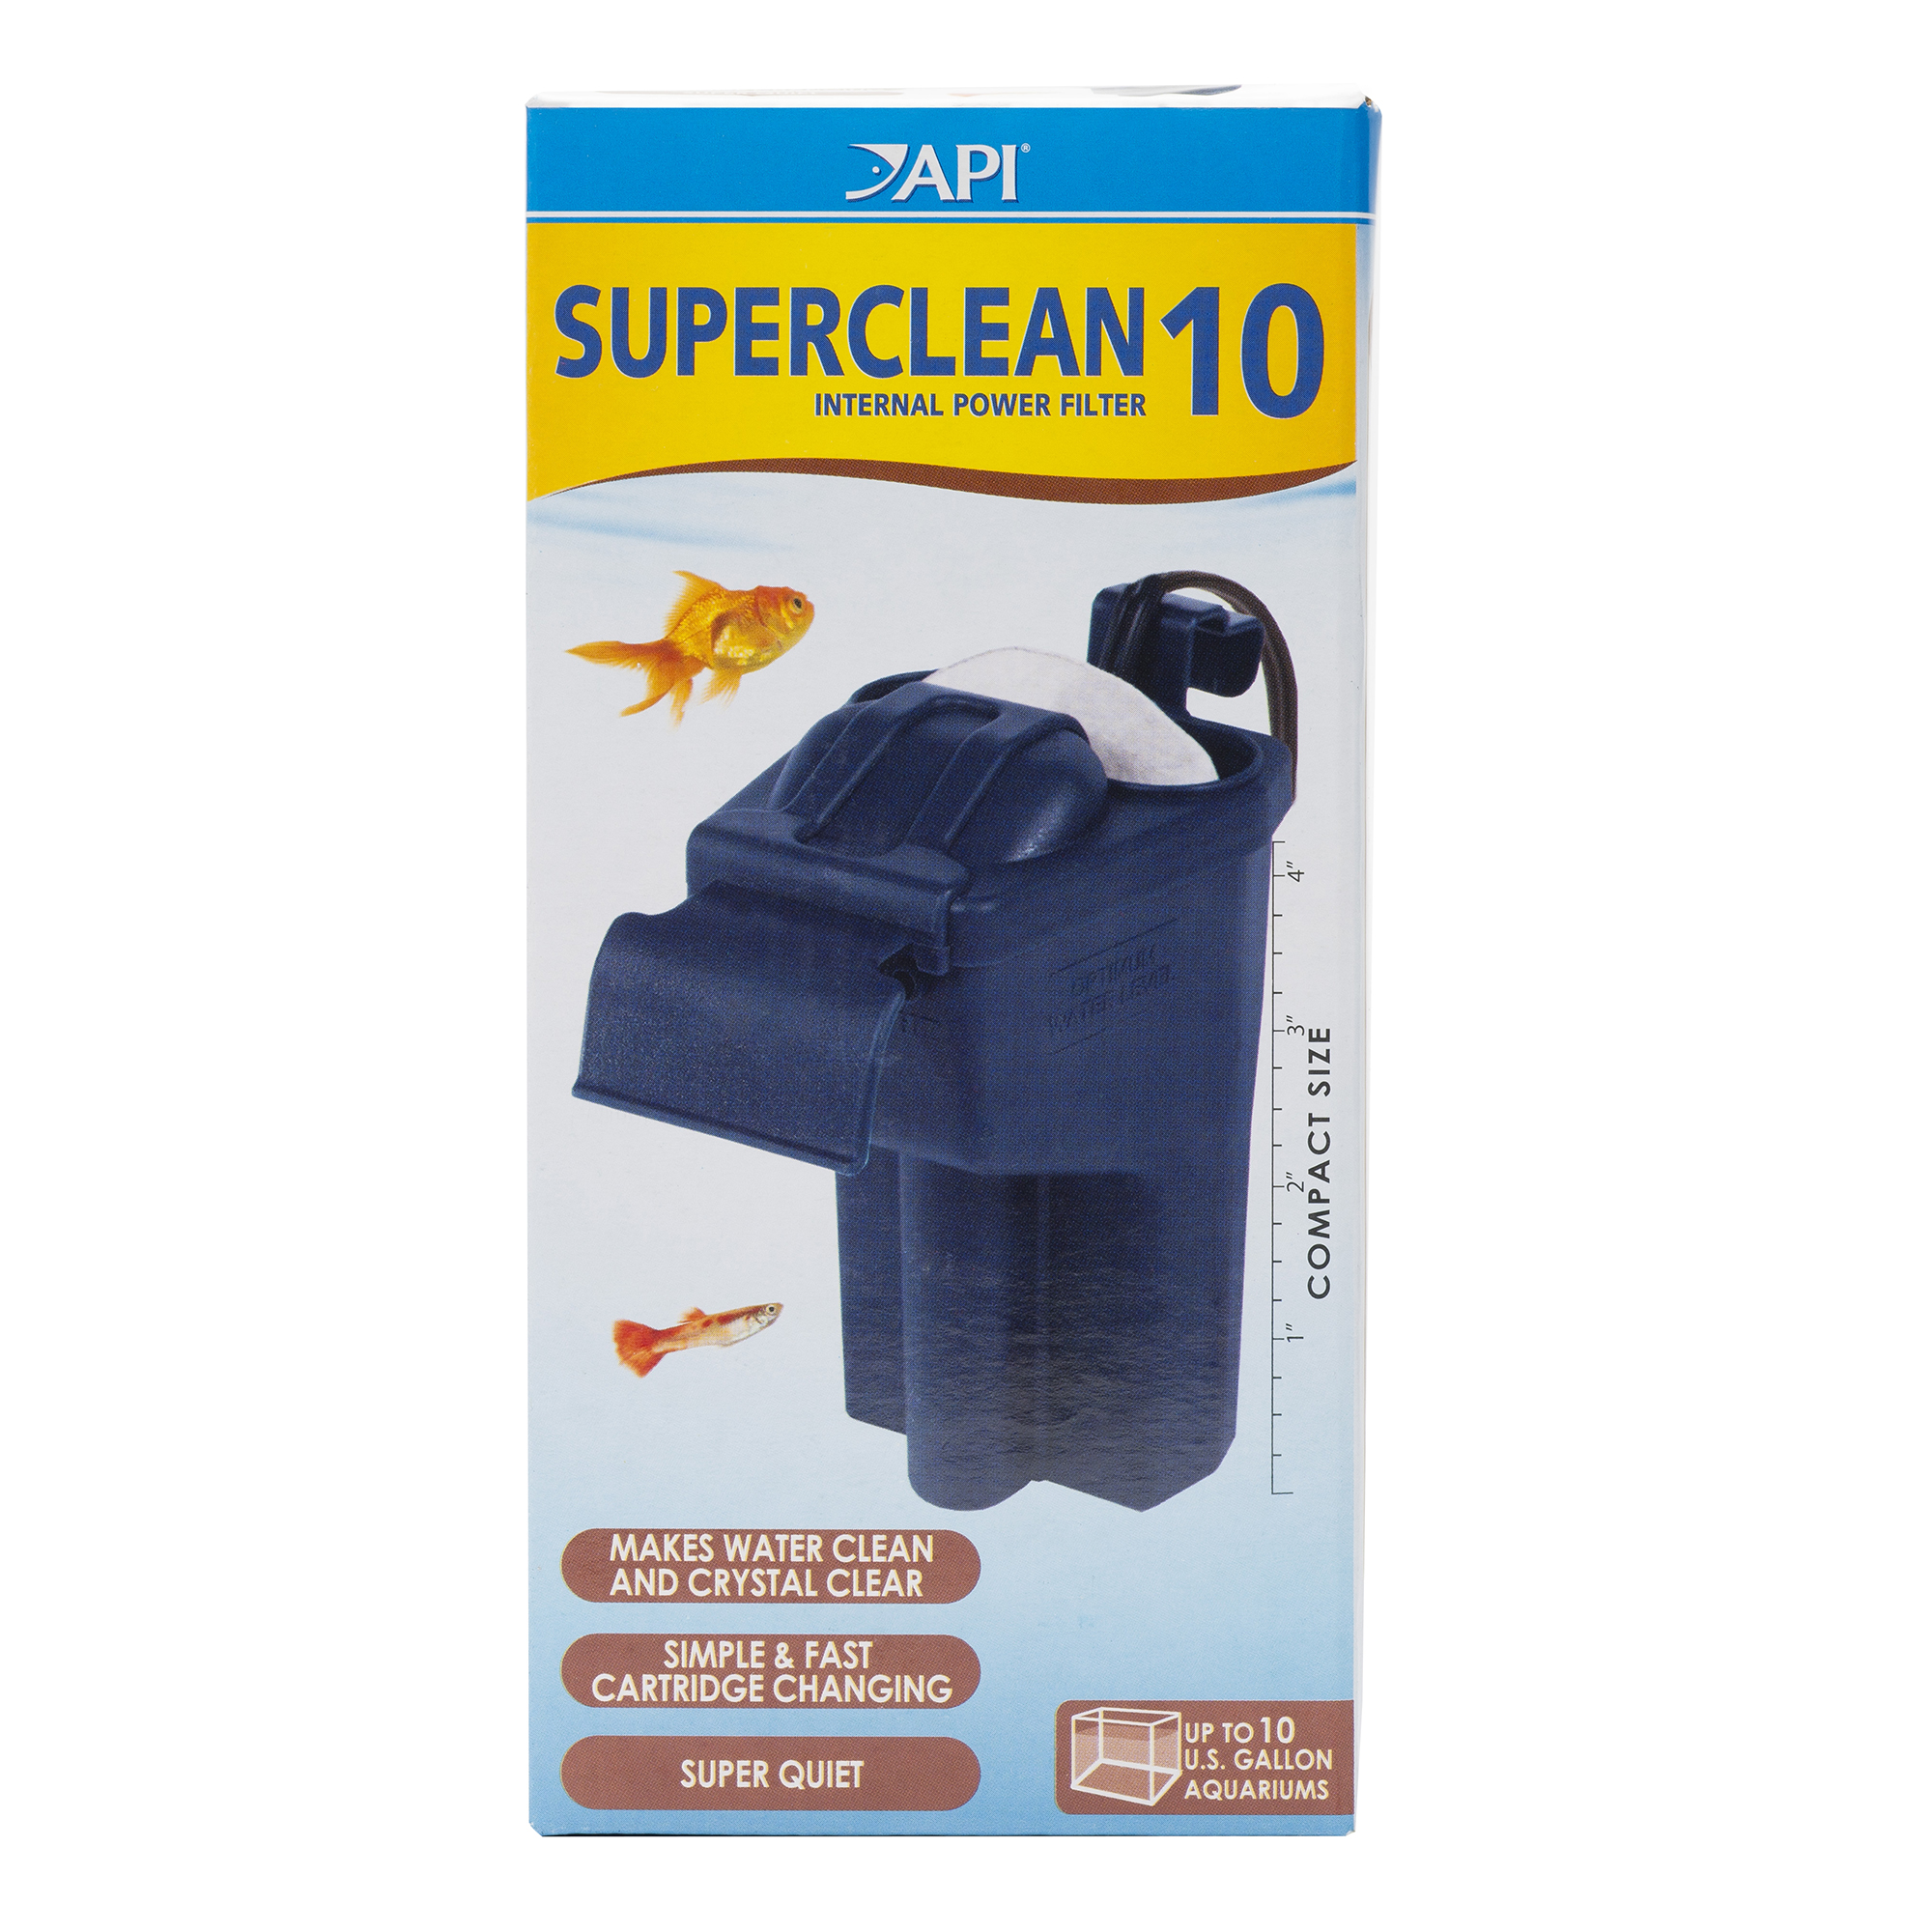 API SUPERCLEAN 10 INTERNAL POWER FILTER Aquarium Internal Filter 1-Count